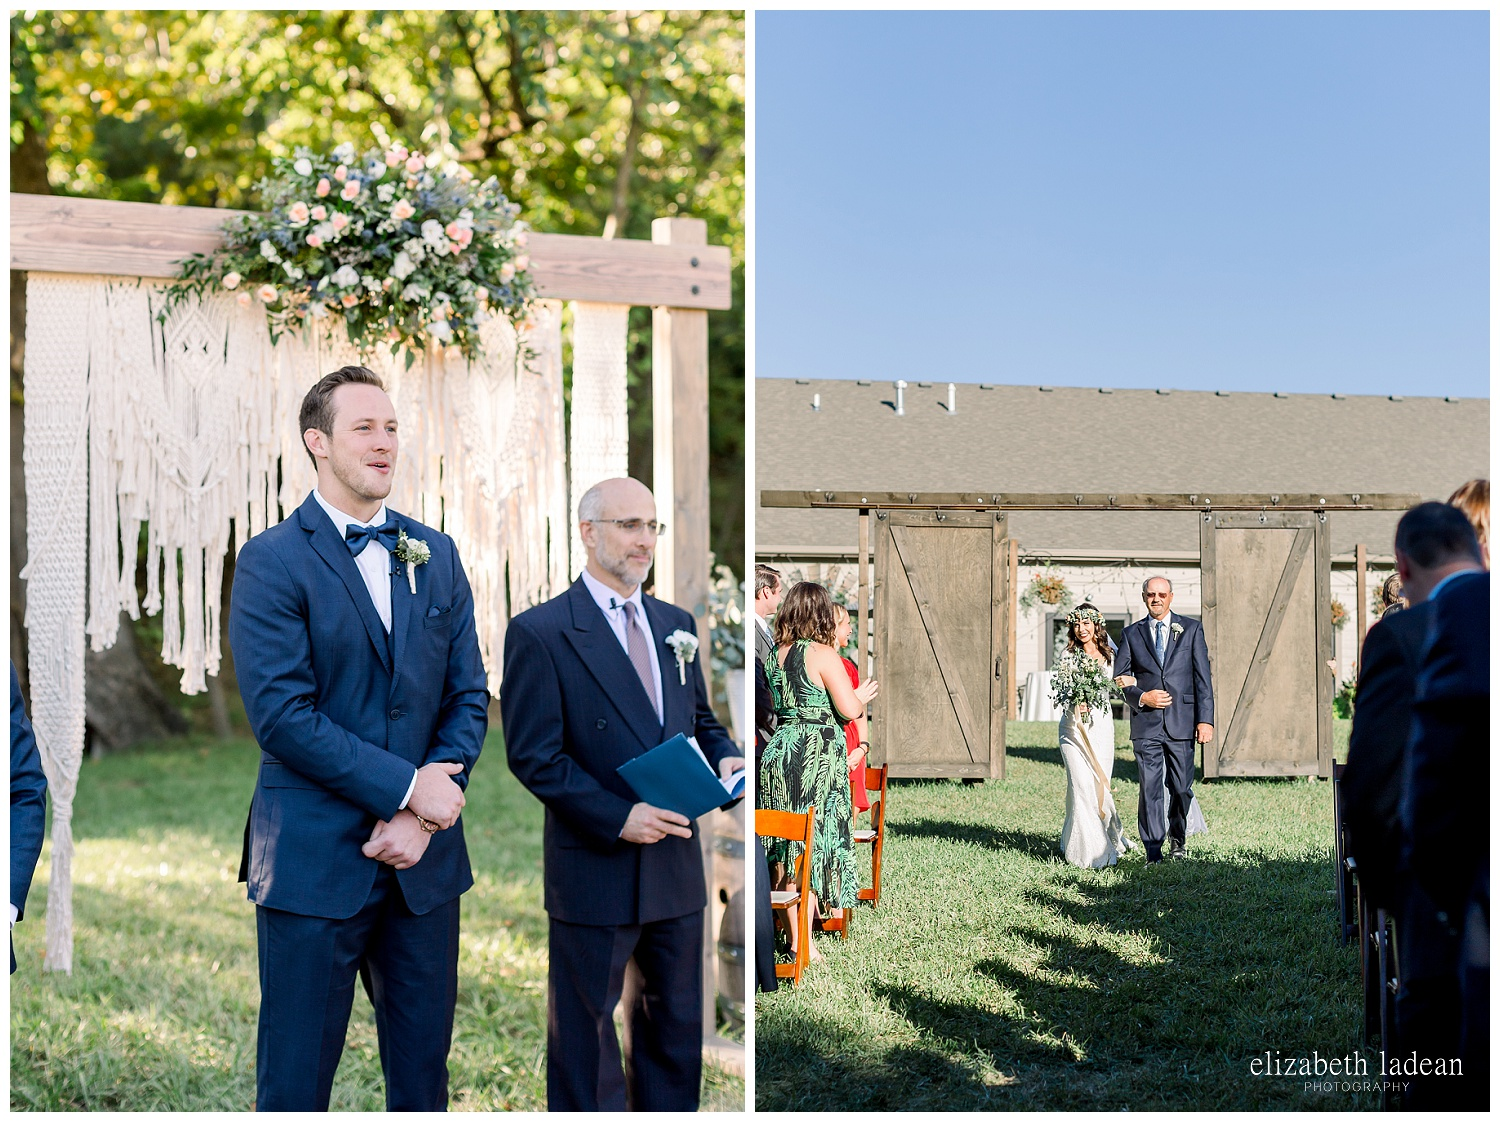 Willow-Creek-Blush-and-Blues-Outdoor-Wedding-Photography-S+Z2018-elizabeth-ladean-photography-photo_0567.jpg